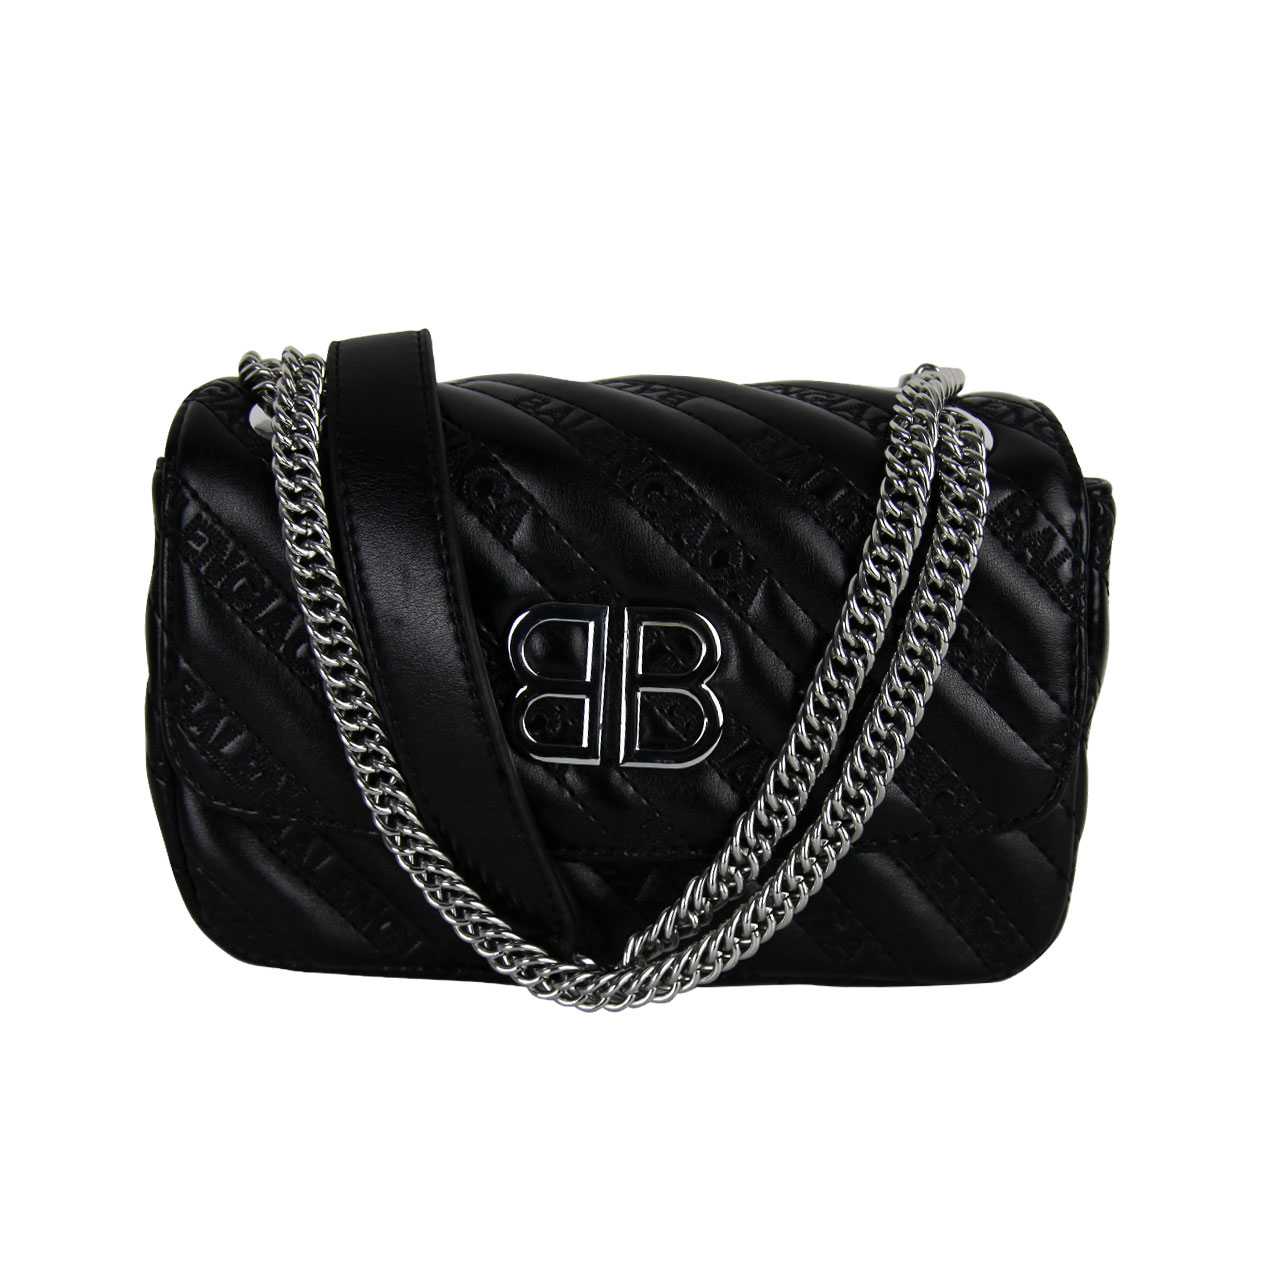 Real Leather Quilted Black Crossbody Purse With Leather And Silver Chain Strap For Women